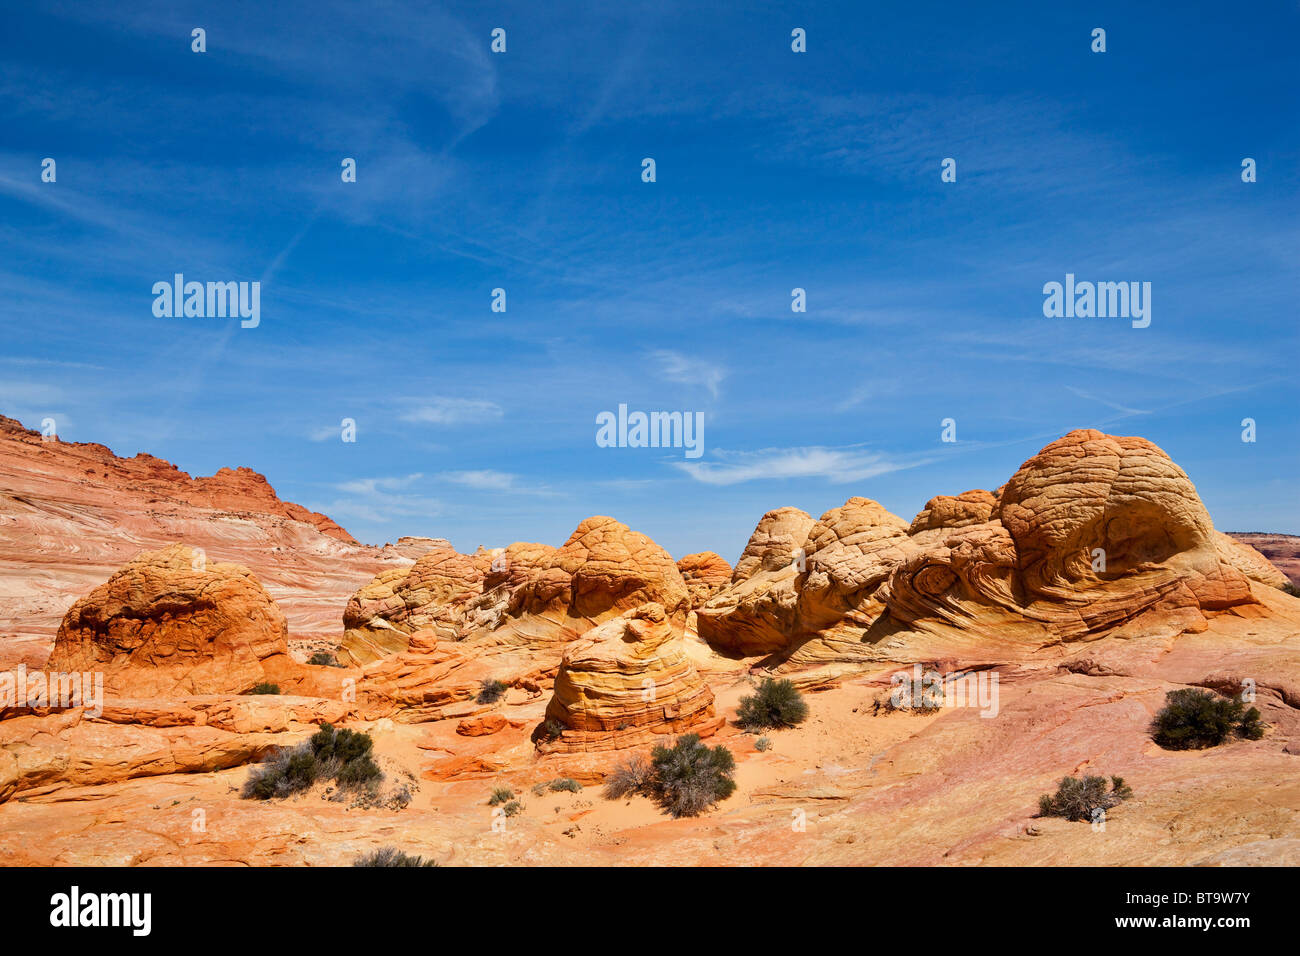 Brain Rocks, rock formations in Coyote Buttes North, Paria Canyon-Vermilion Cliffs Wilderness, Utah, Arizona, USA - Stock Image